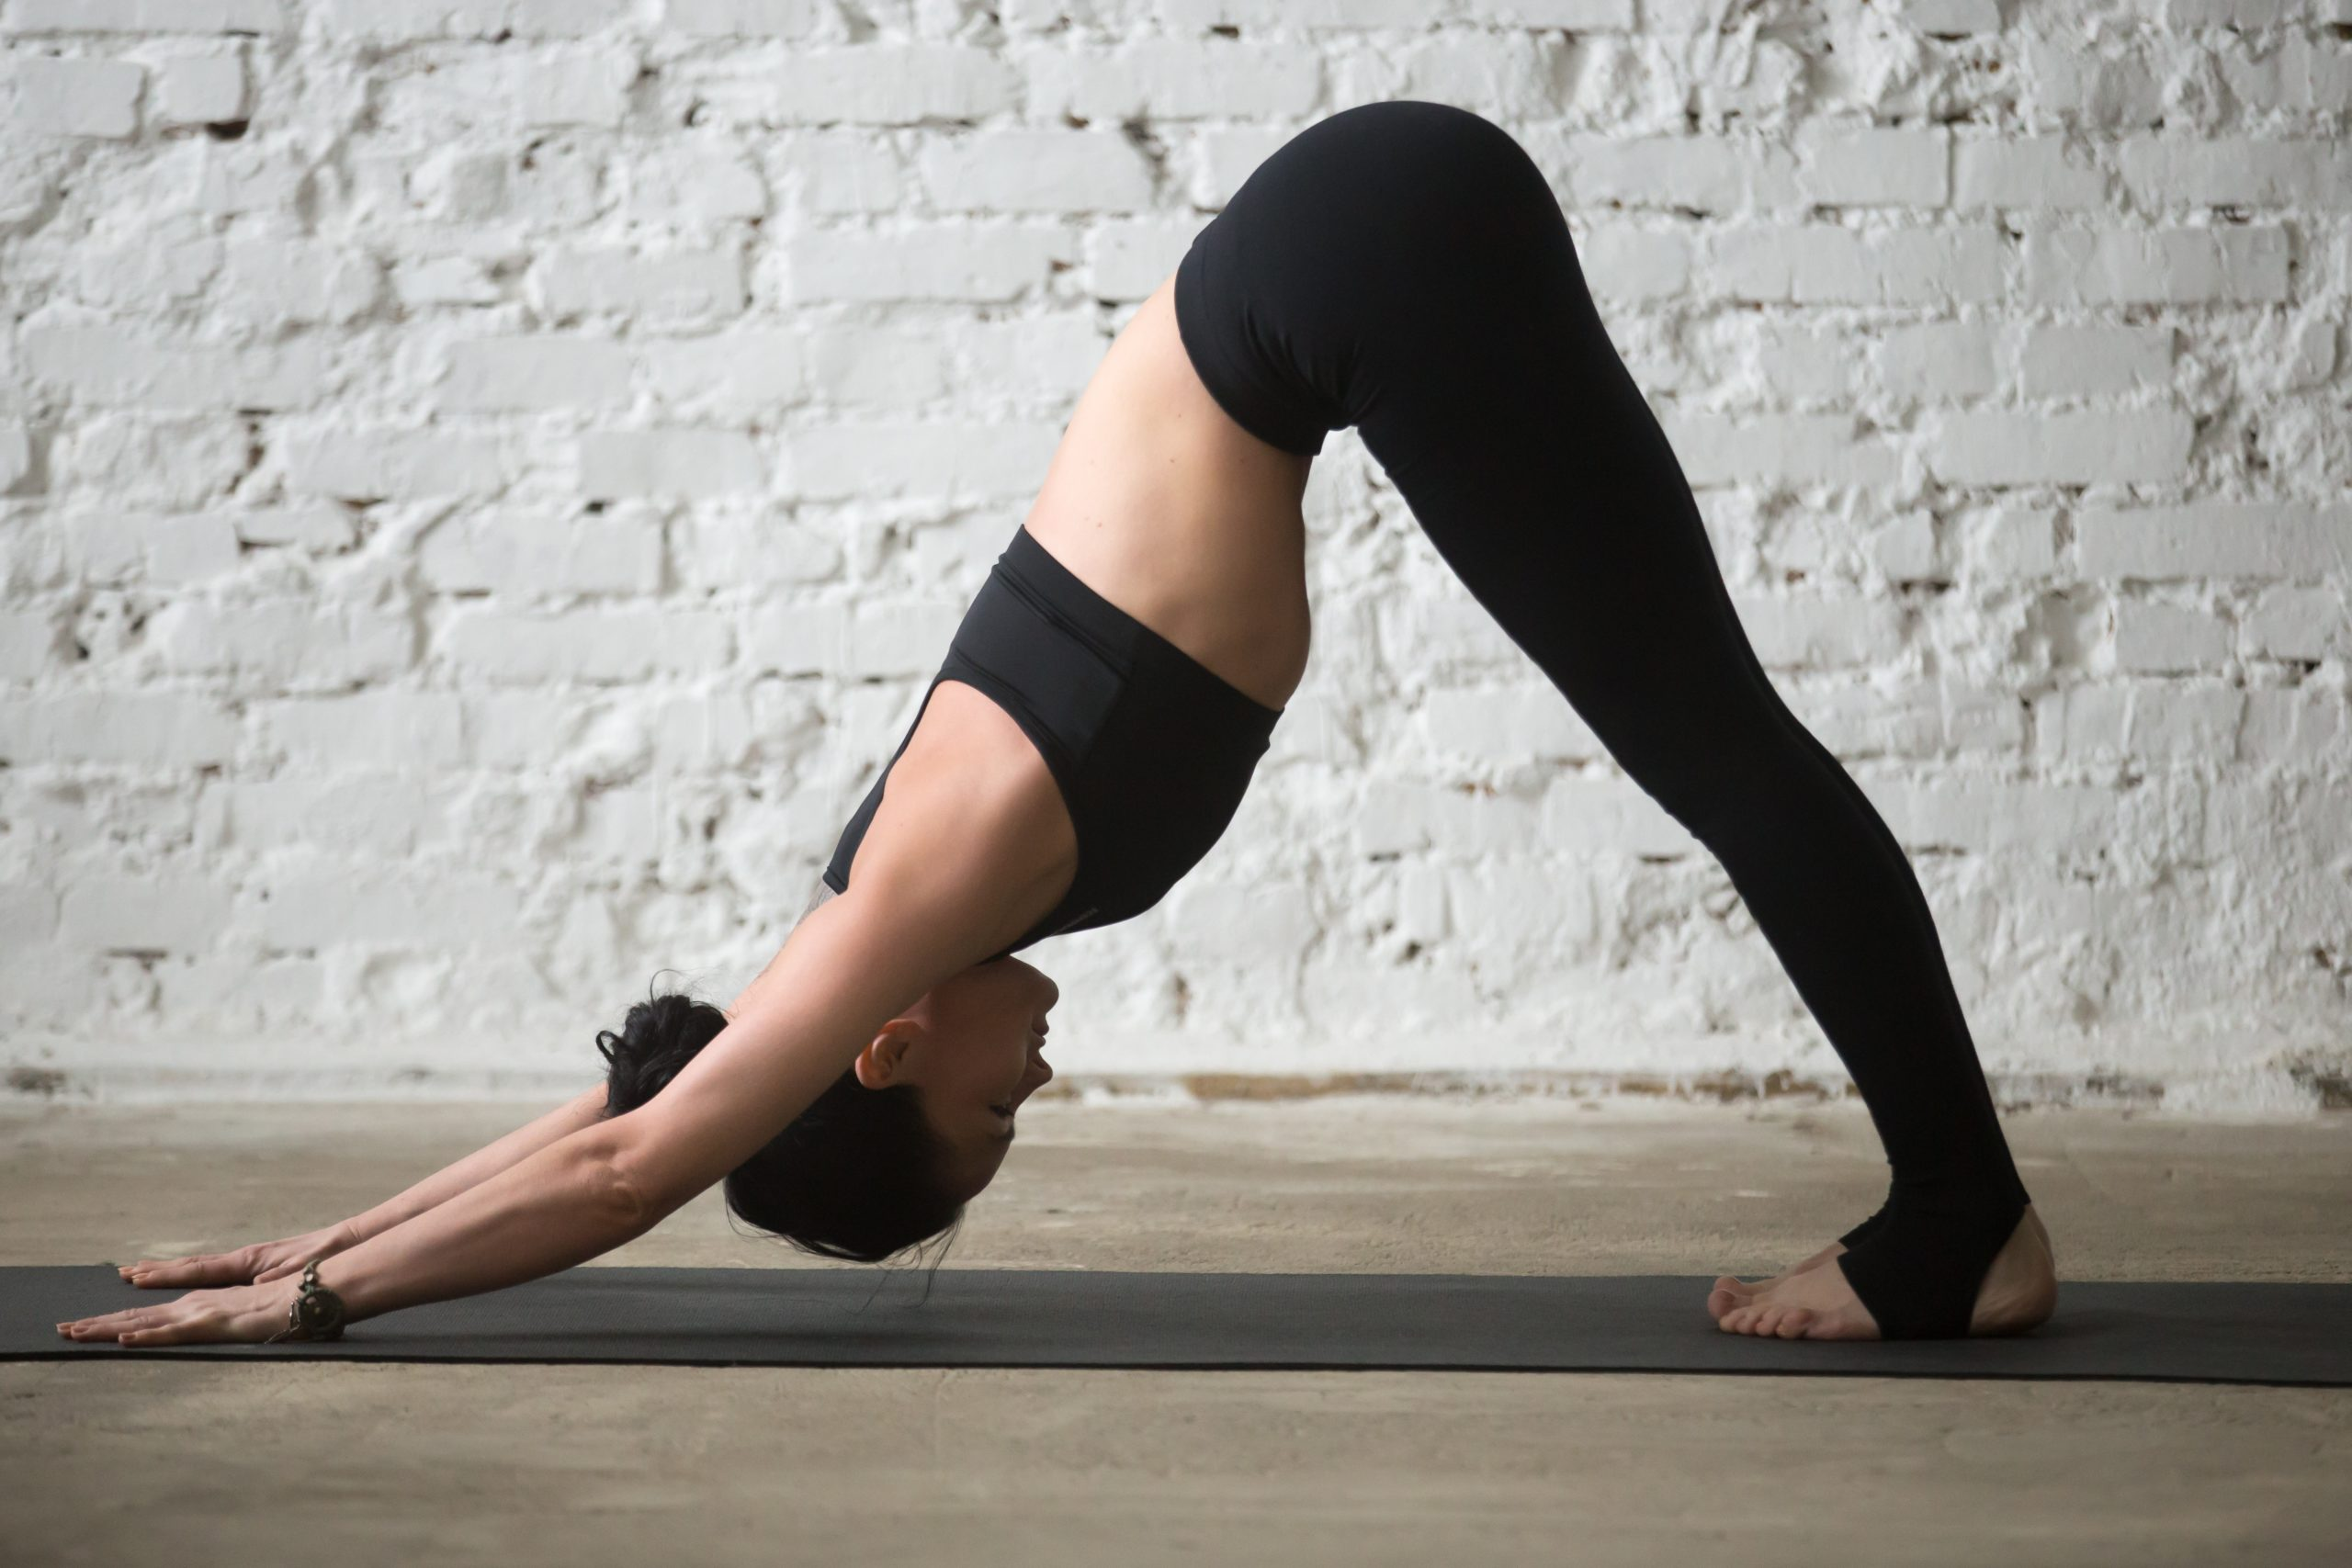 6 Yoga Poses to try for Back Pain - Downward Facing Dog